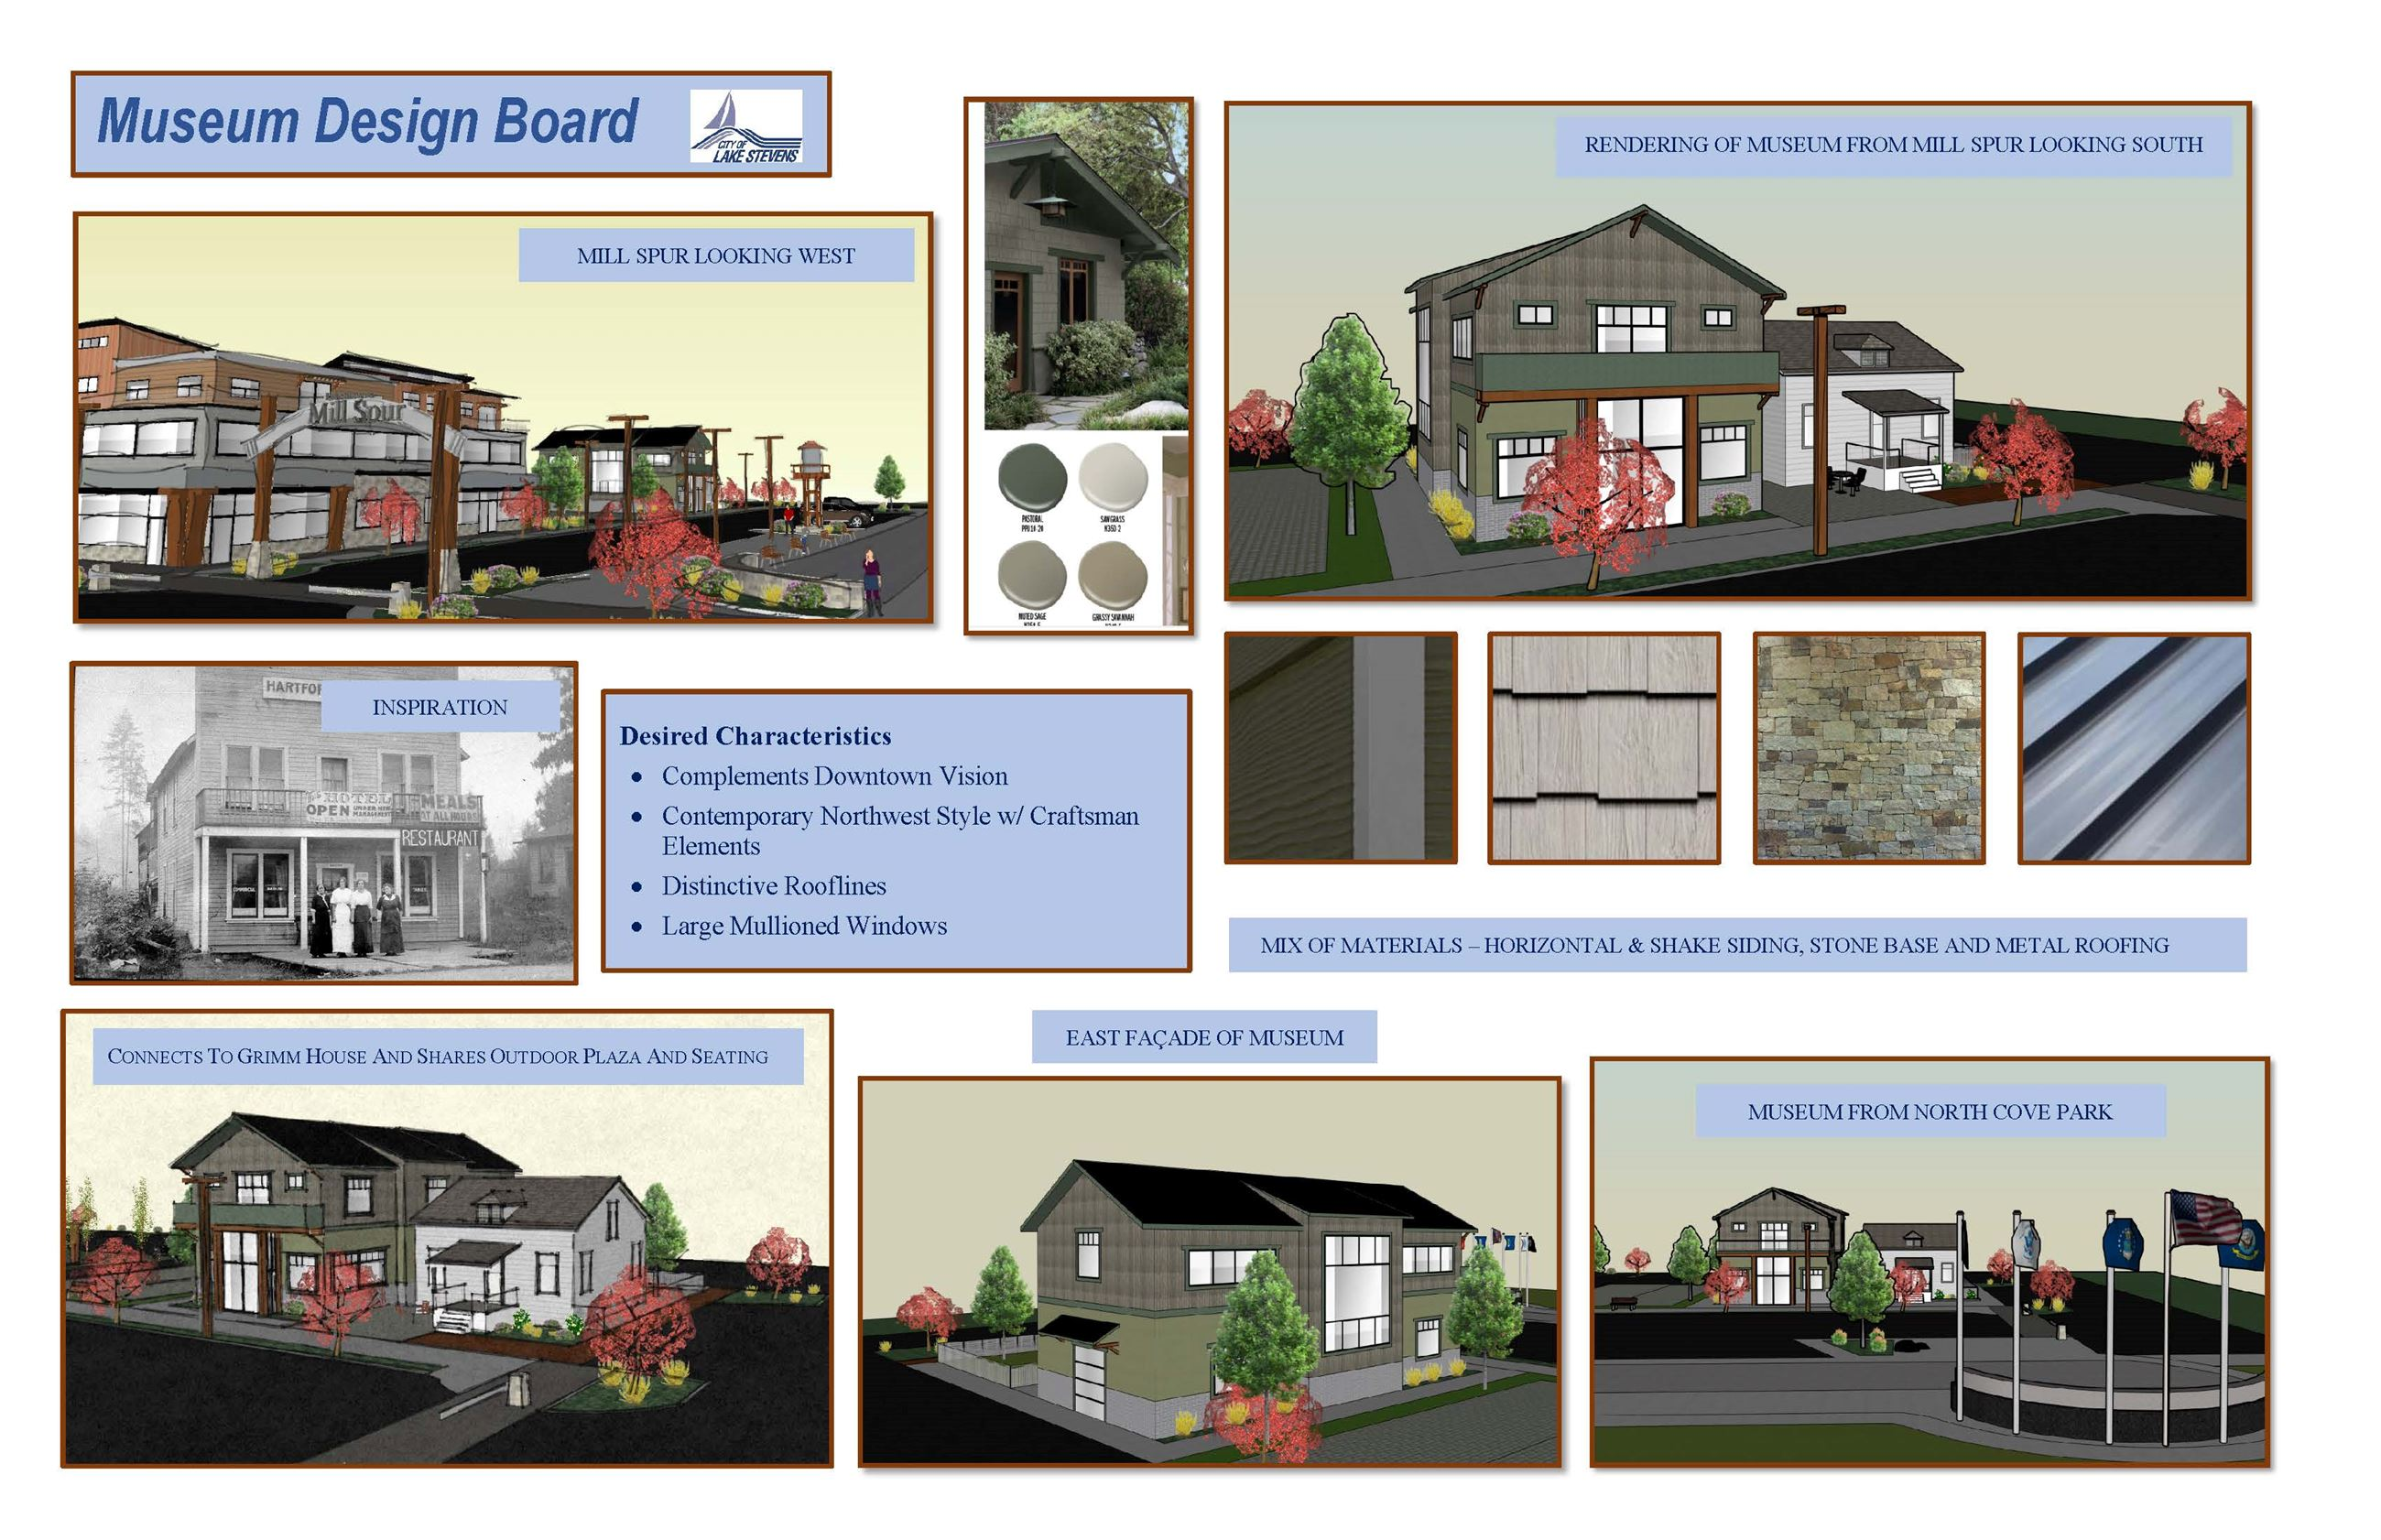 Lake Stevens Historical Museum Design Board_1-21-2021